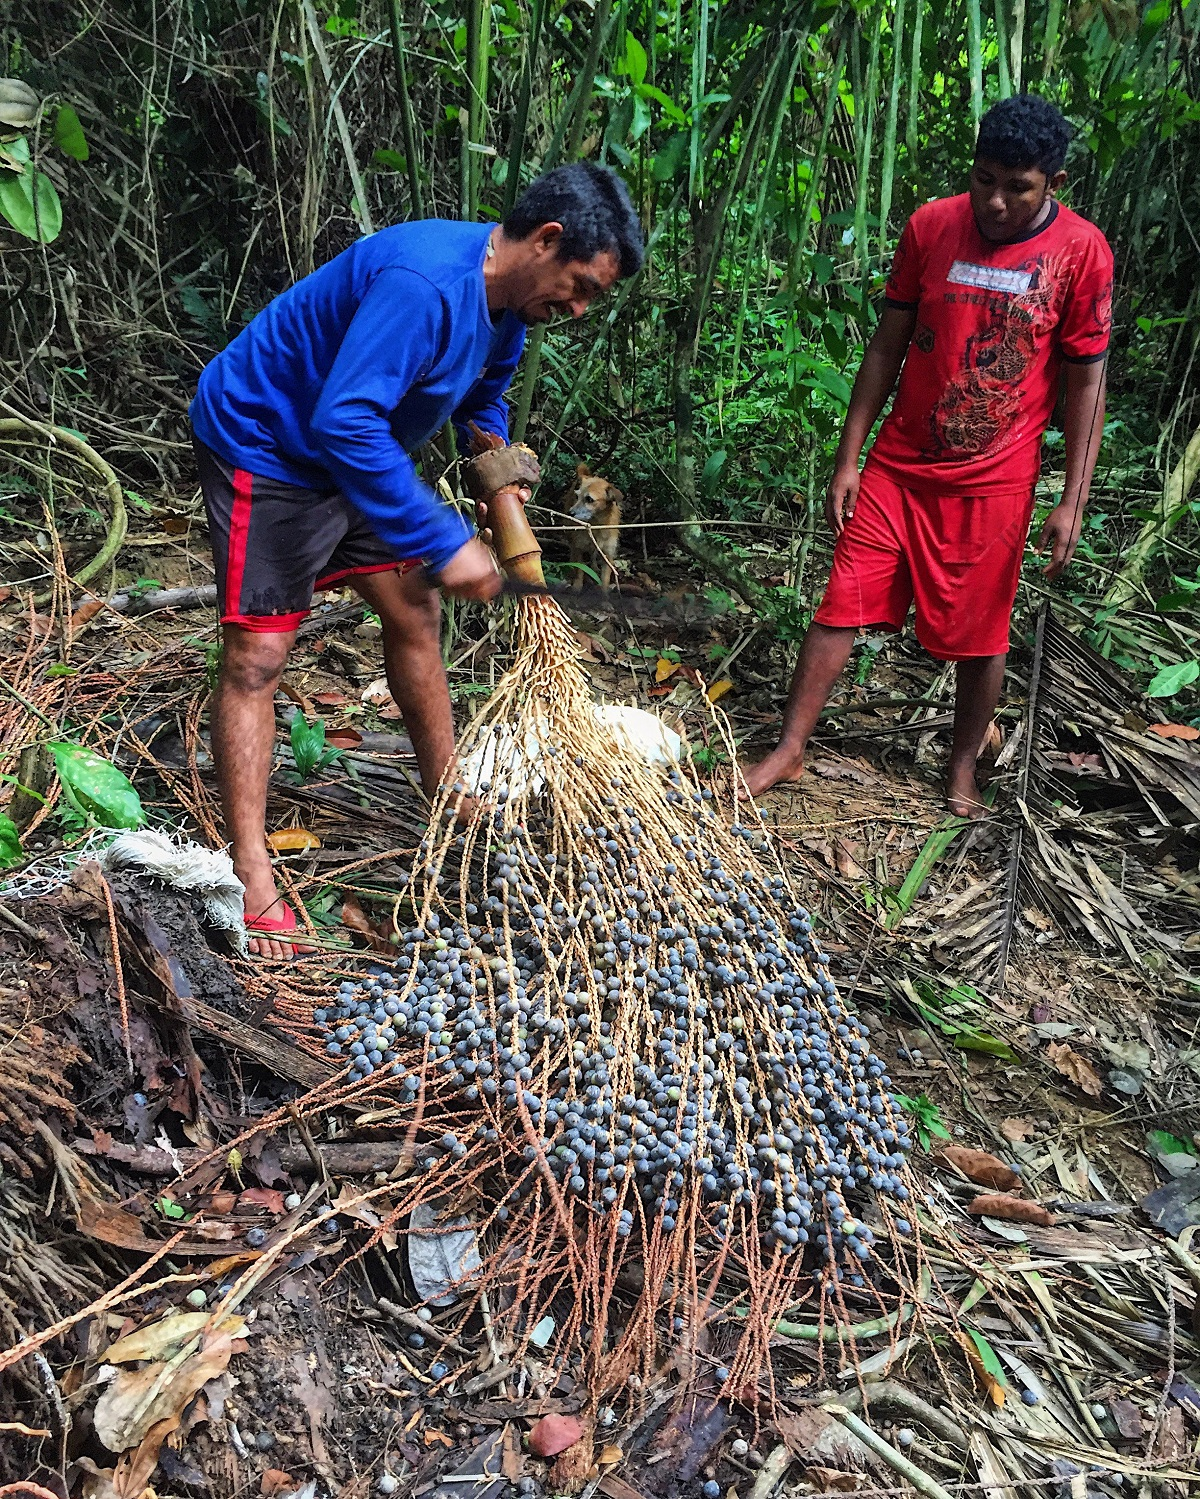 Sinha, left, strips the Bacába fruit from its vine. The Bacába is a relative of the popular açaí superfruit. Photo by Maximo Anderson for Mongabay.